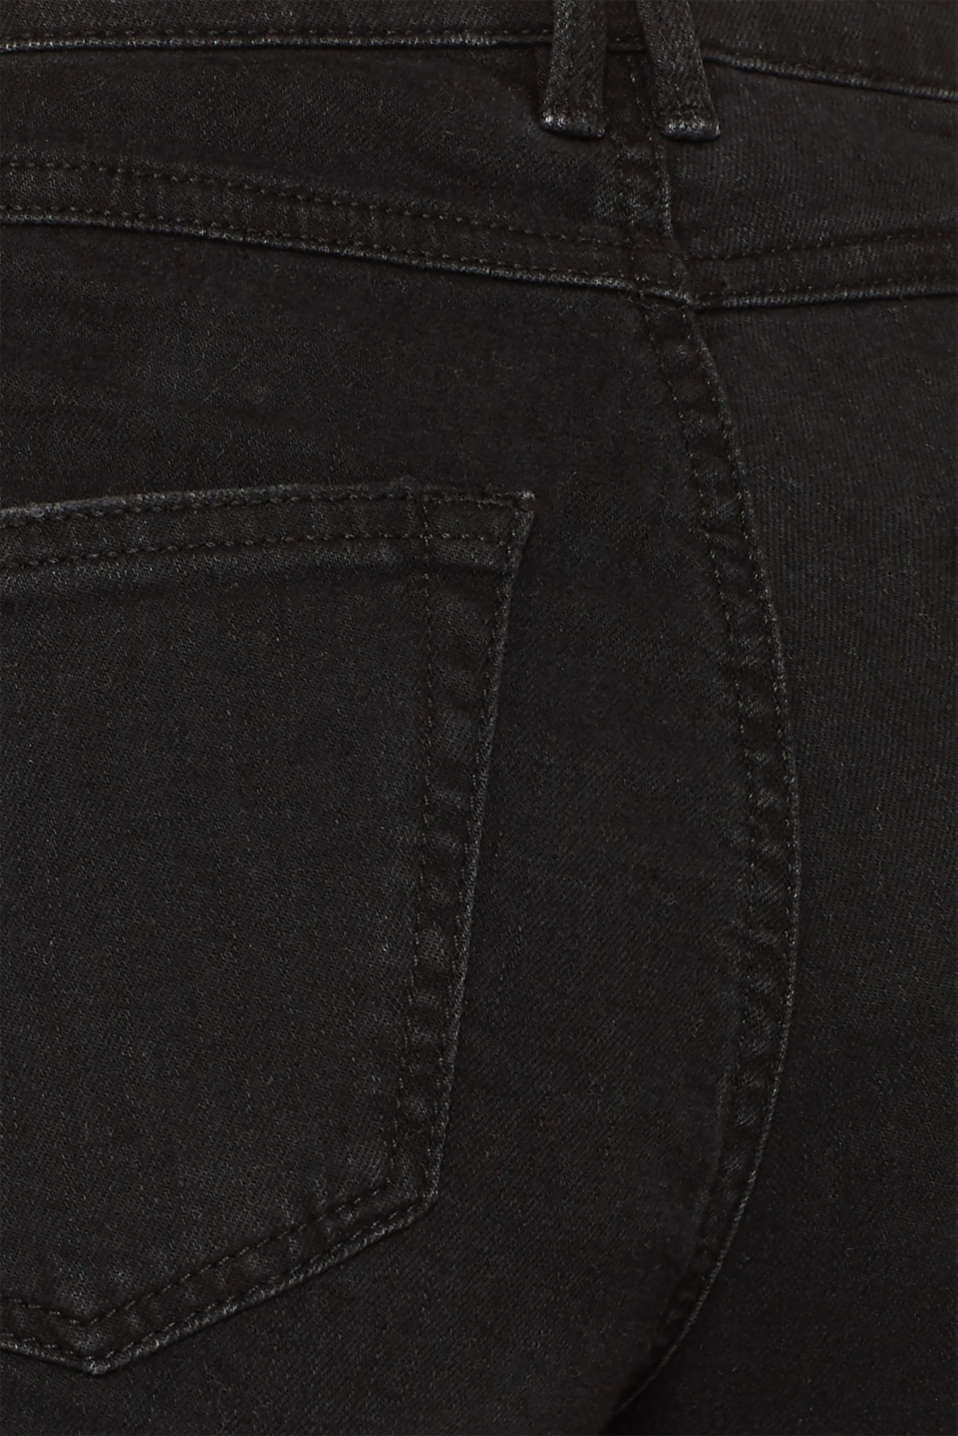 Jean culottes with an open hem, BLACK DARK WASH, detail image number 4